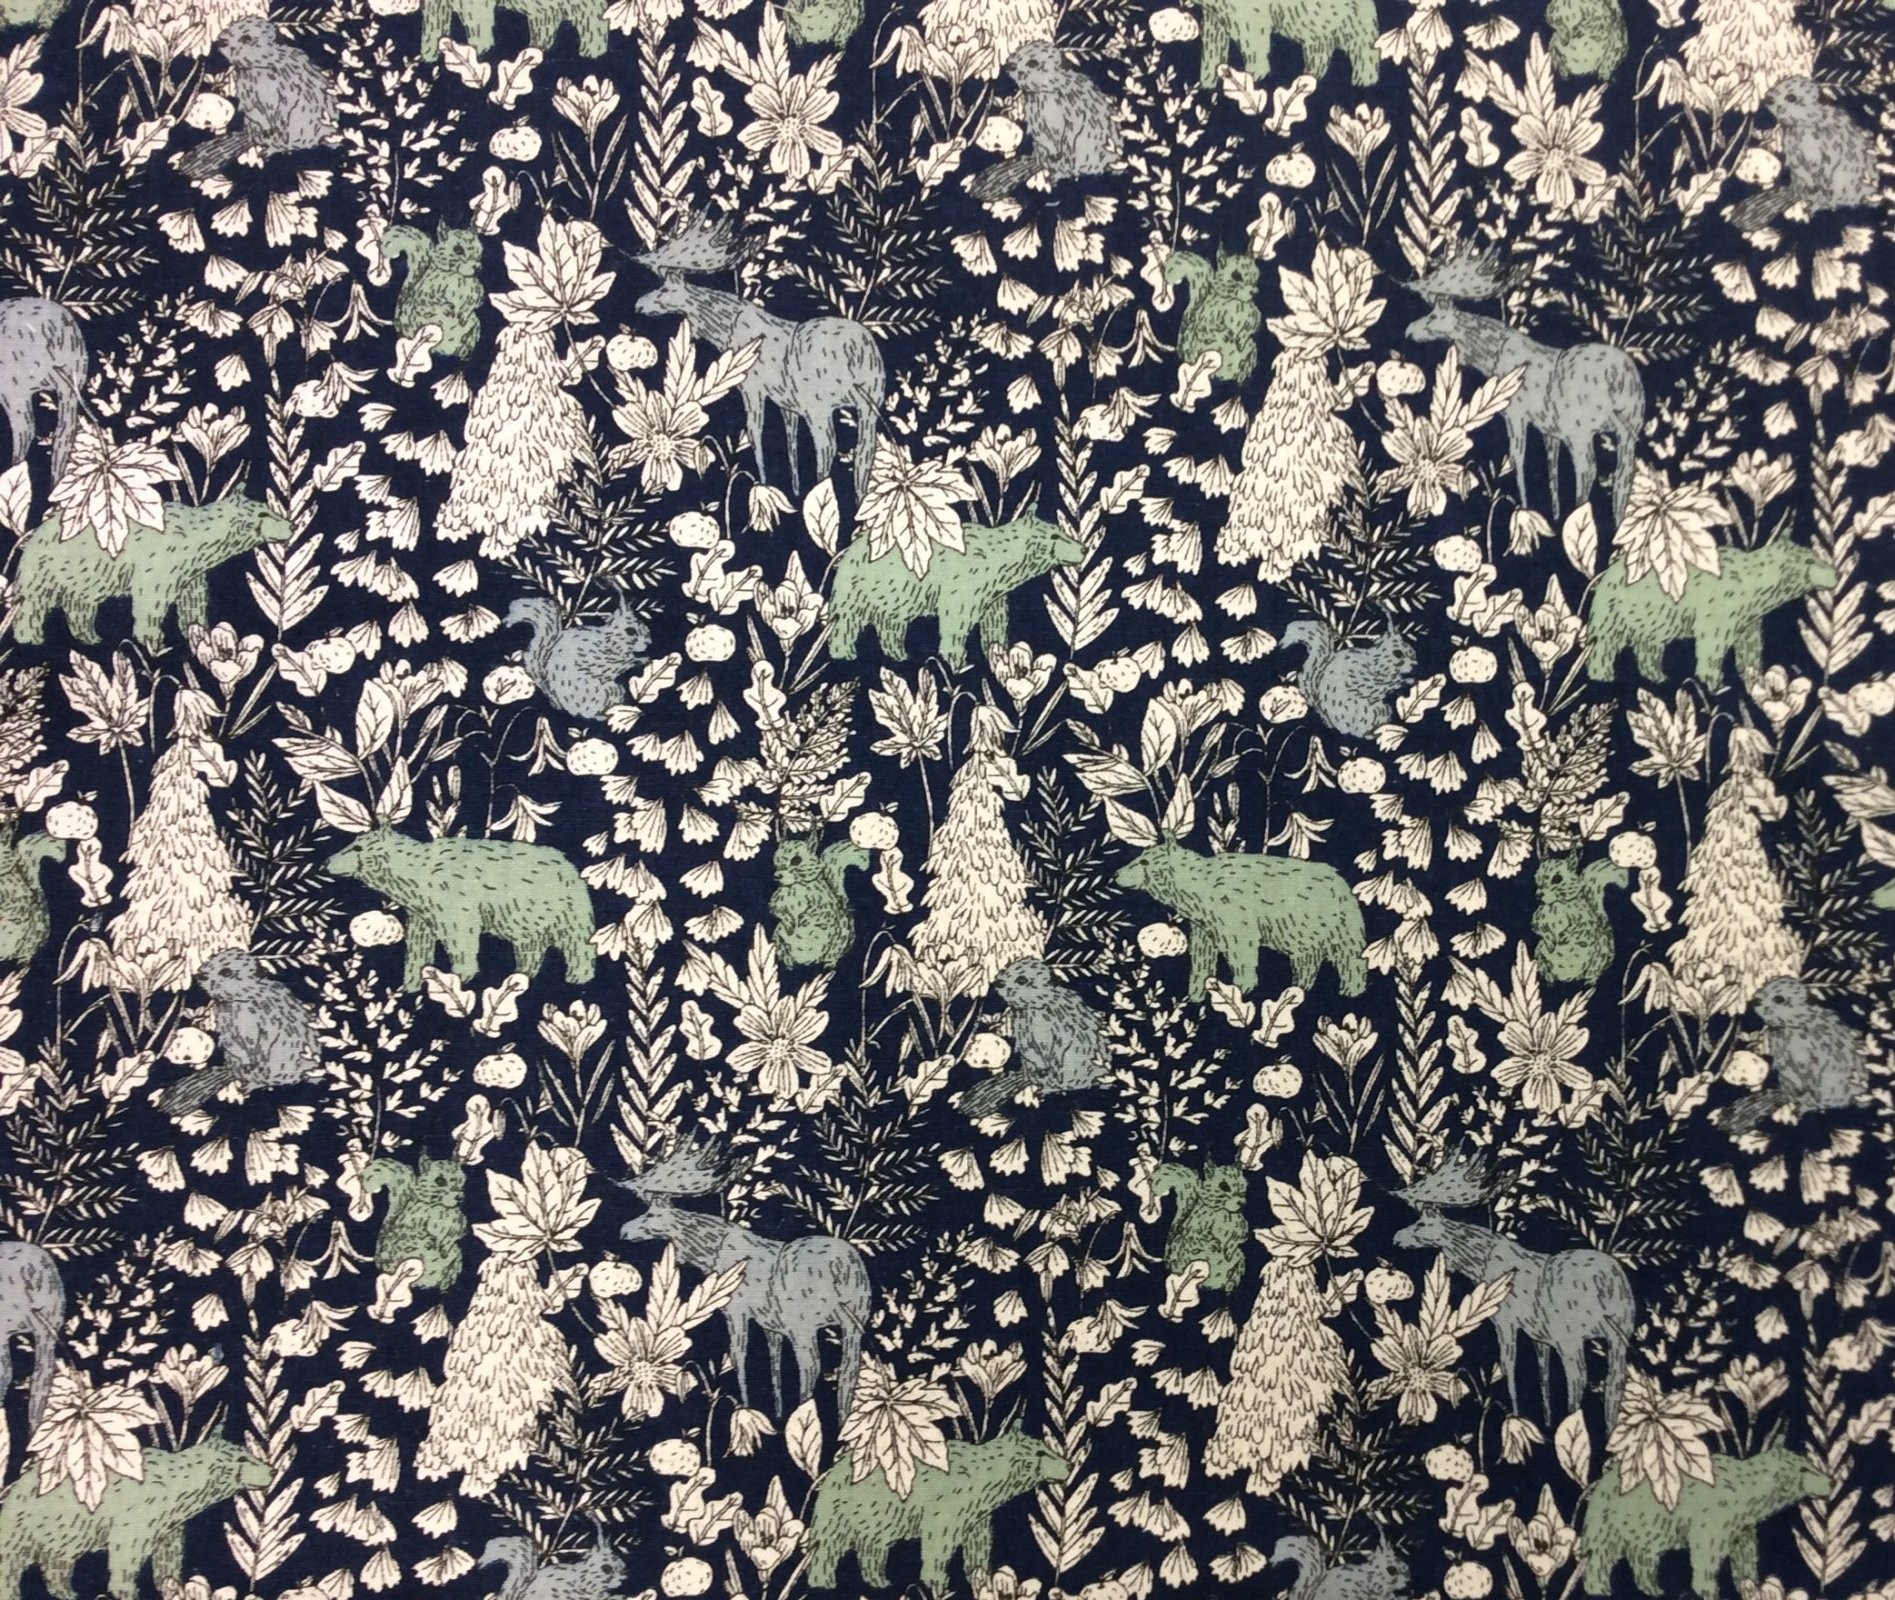 Forest Woodland Animal Vintage Look Bear Squirrel Moose Cotton Flax Fabric RK206